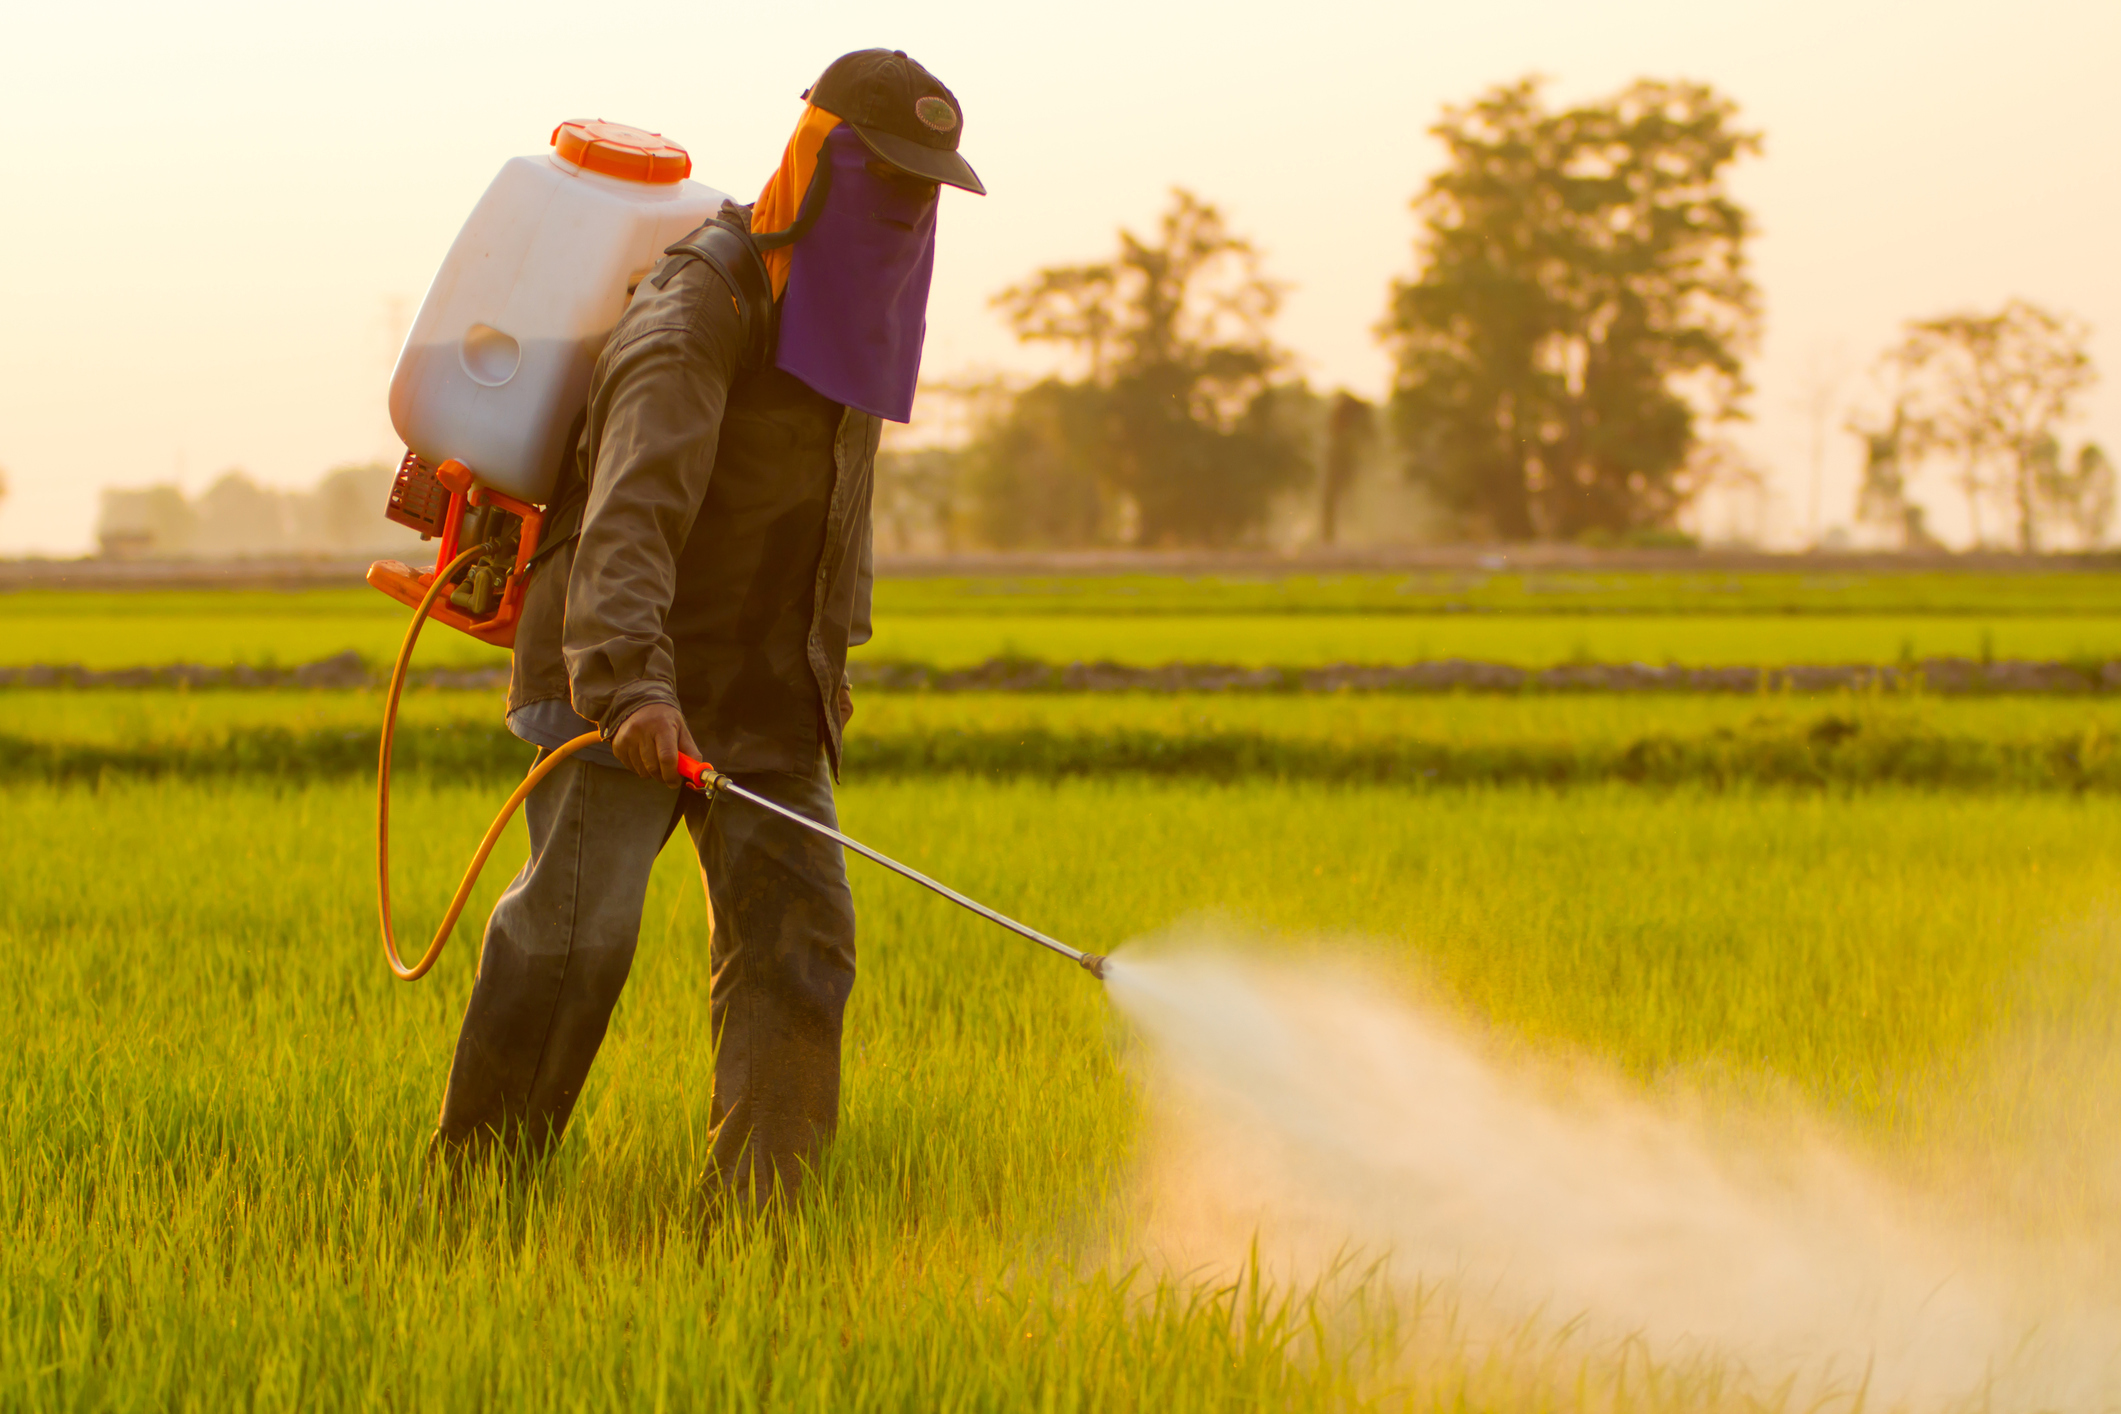 Farmer spraying pesticide.